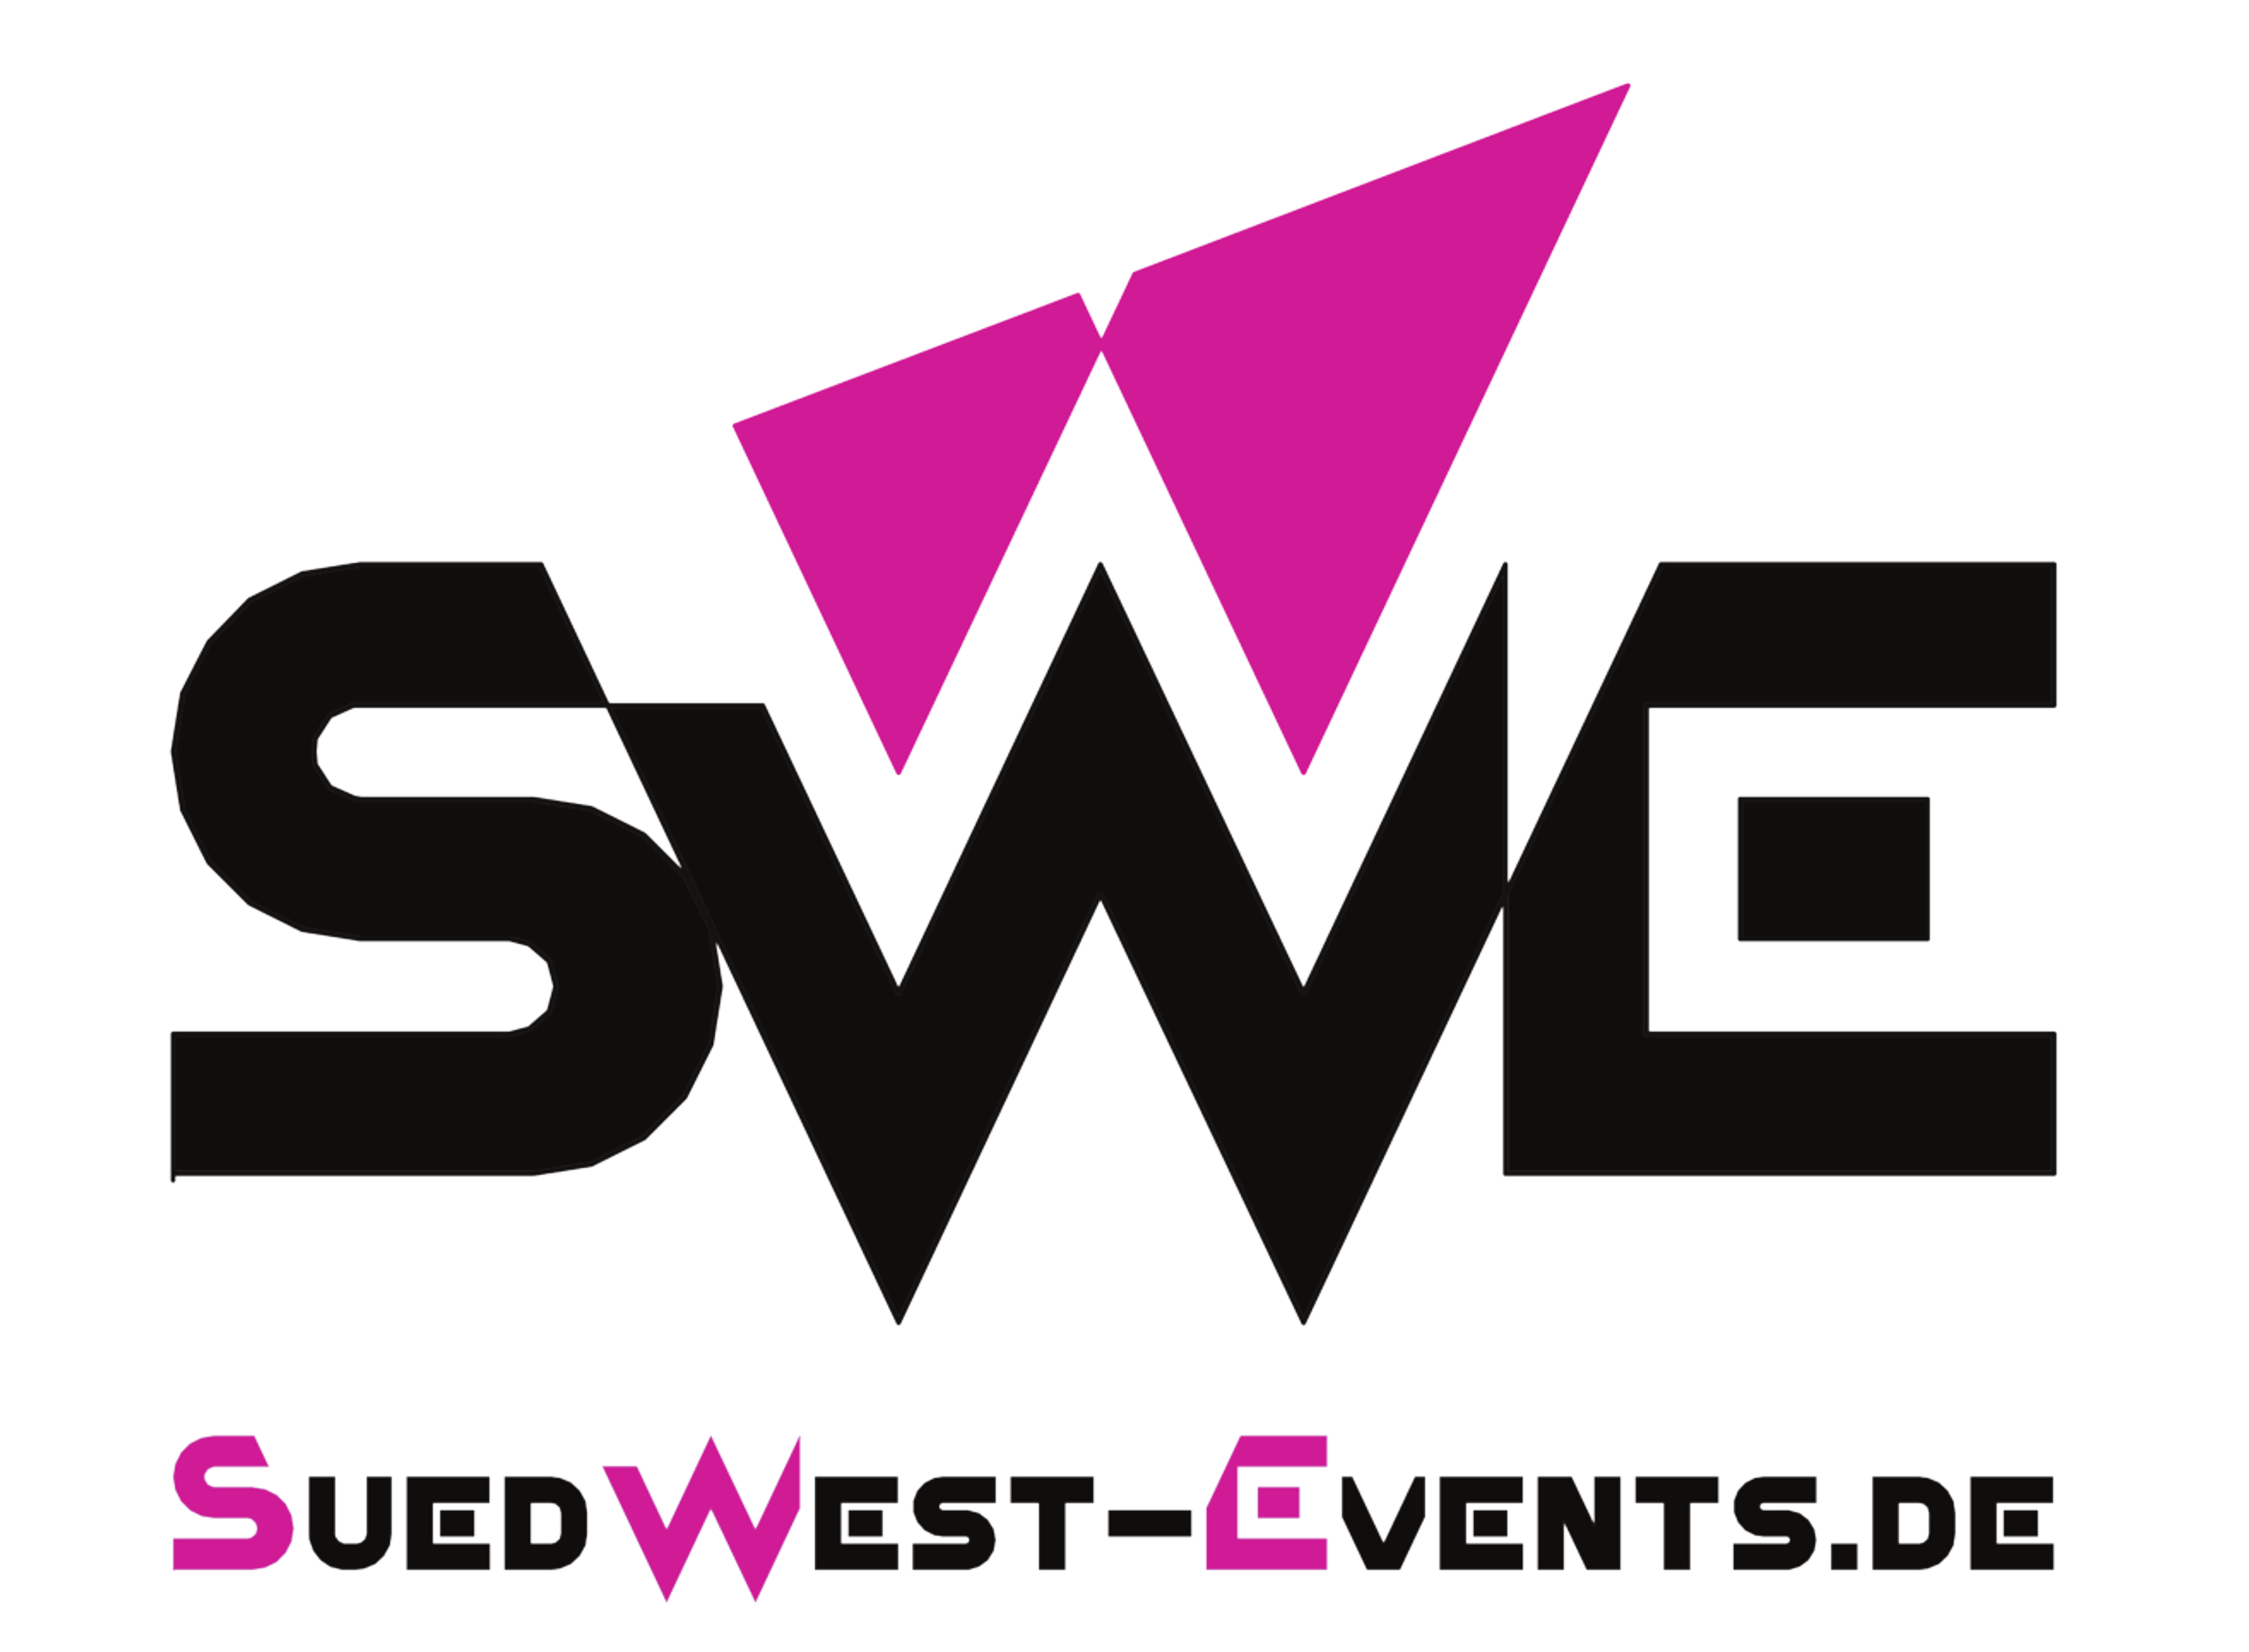 Südwest-Events